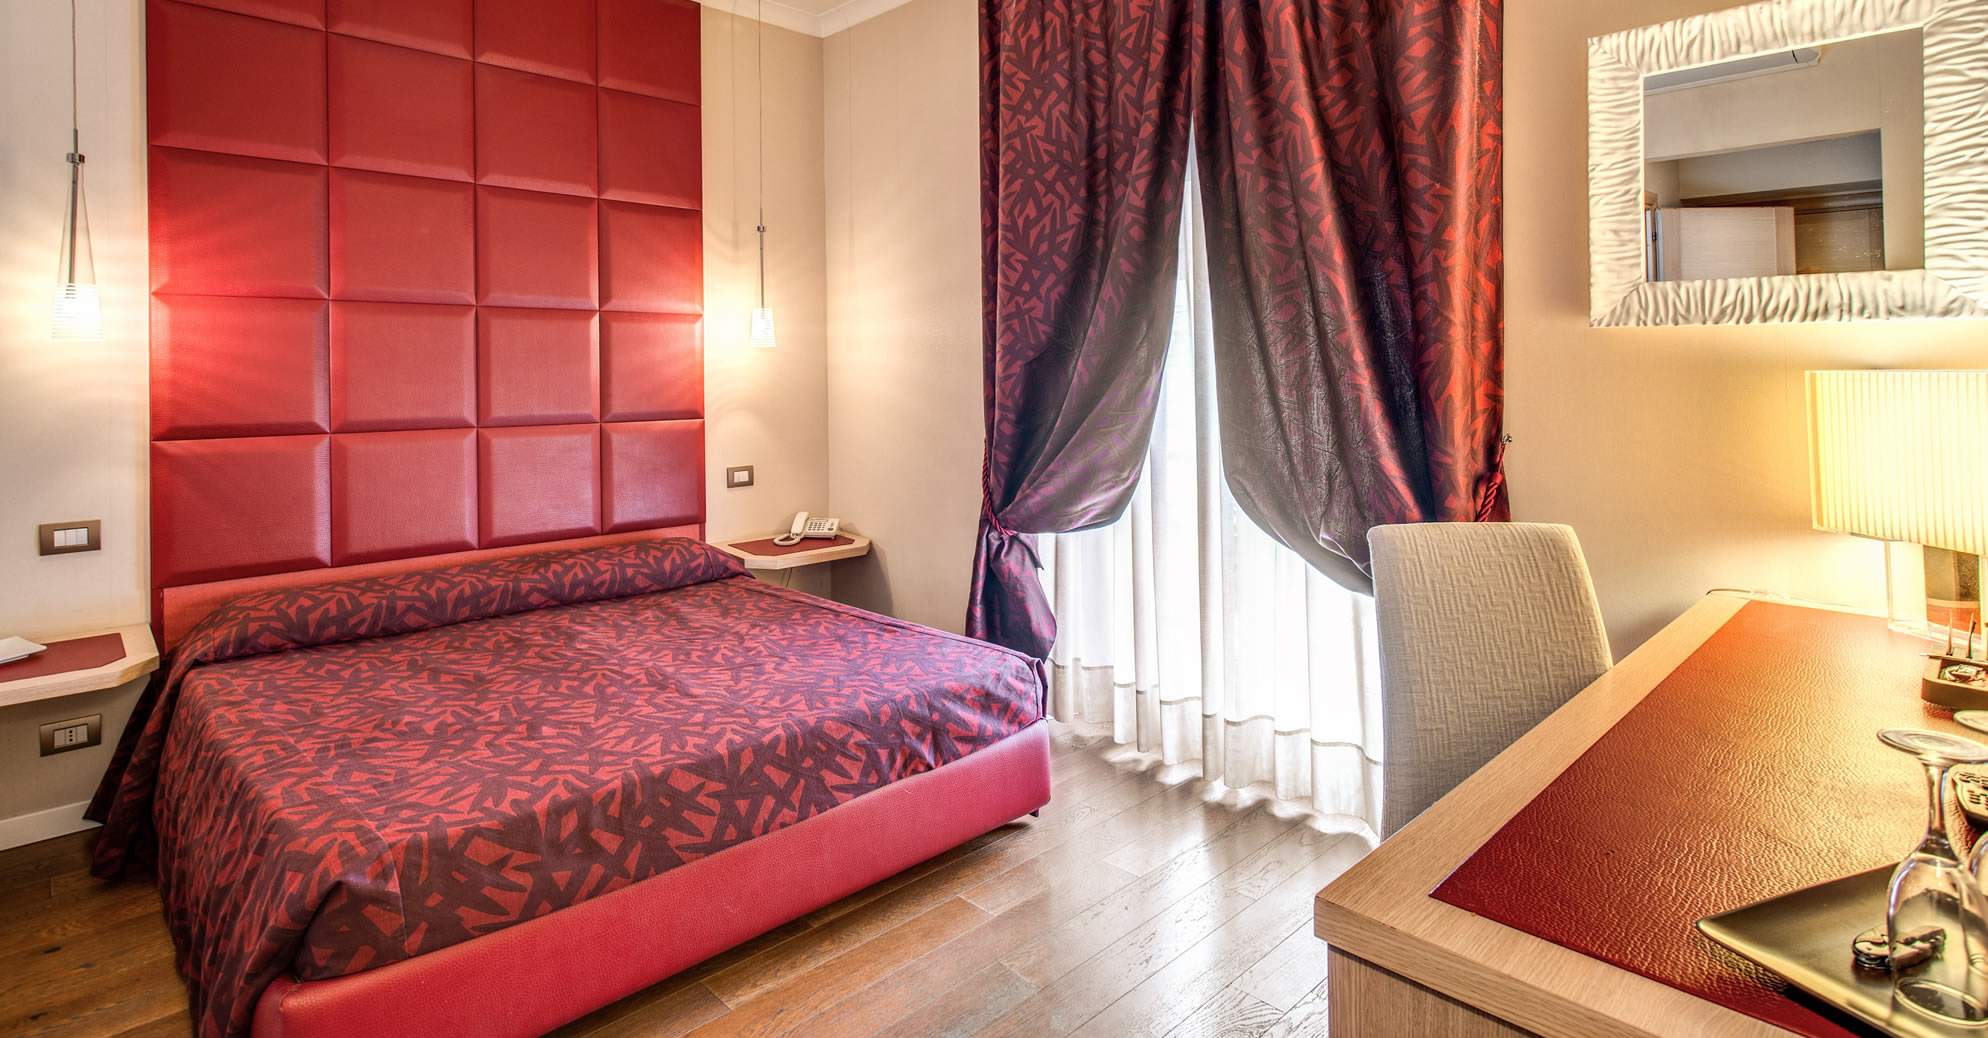 Boutique guesthouse roma official site four star city for Boutique accommodation